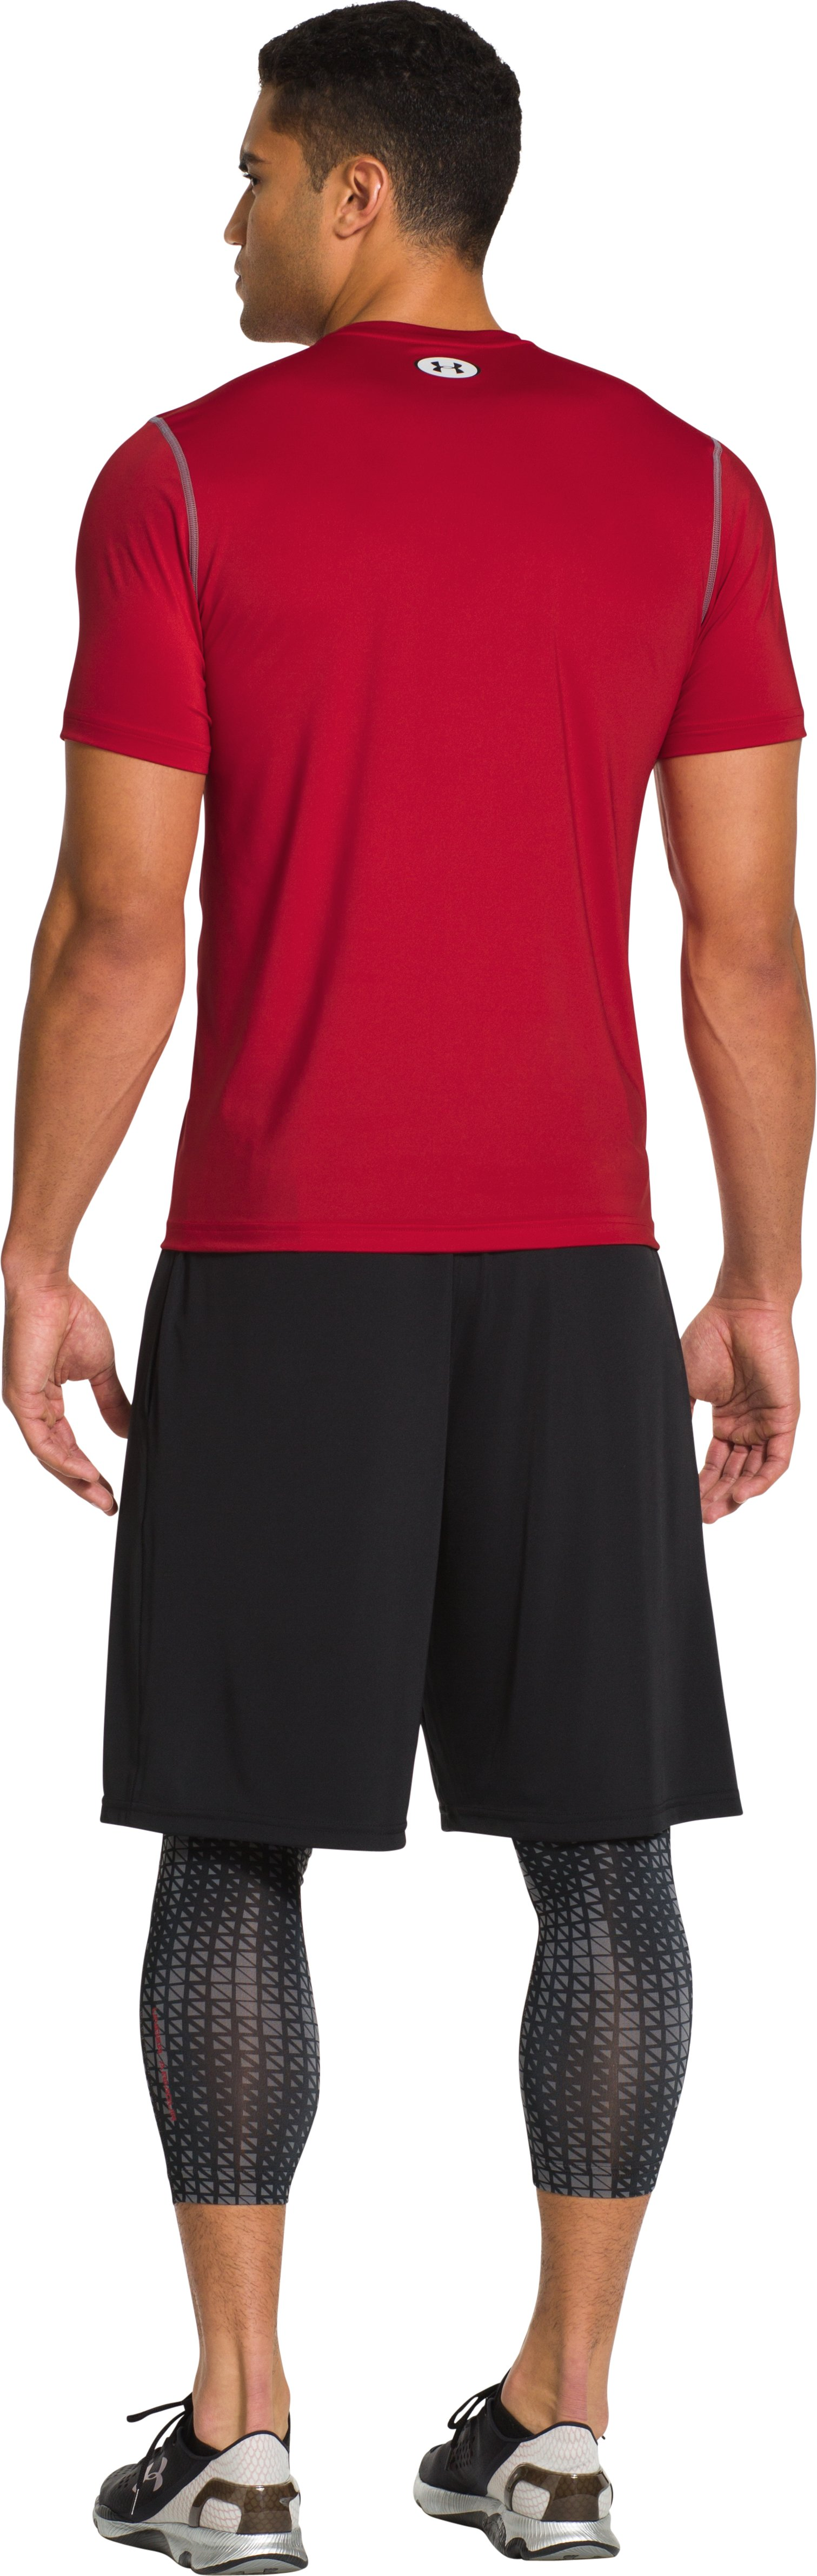 Men's HeatGear® Sonic Fitted Short Sleeve, Red, Back